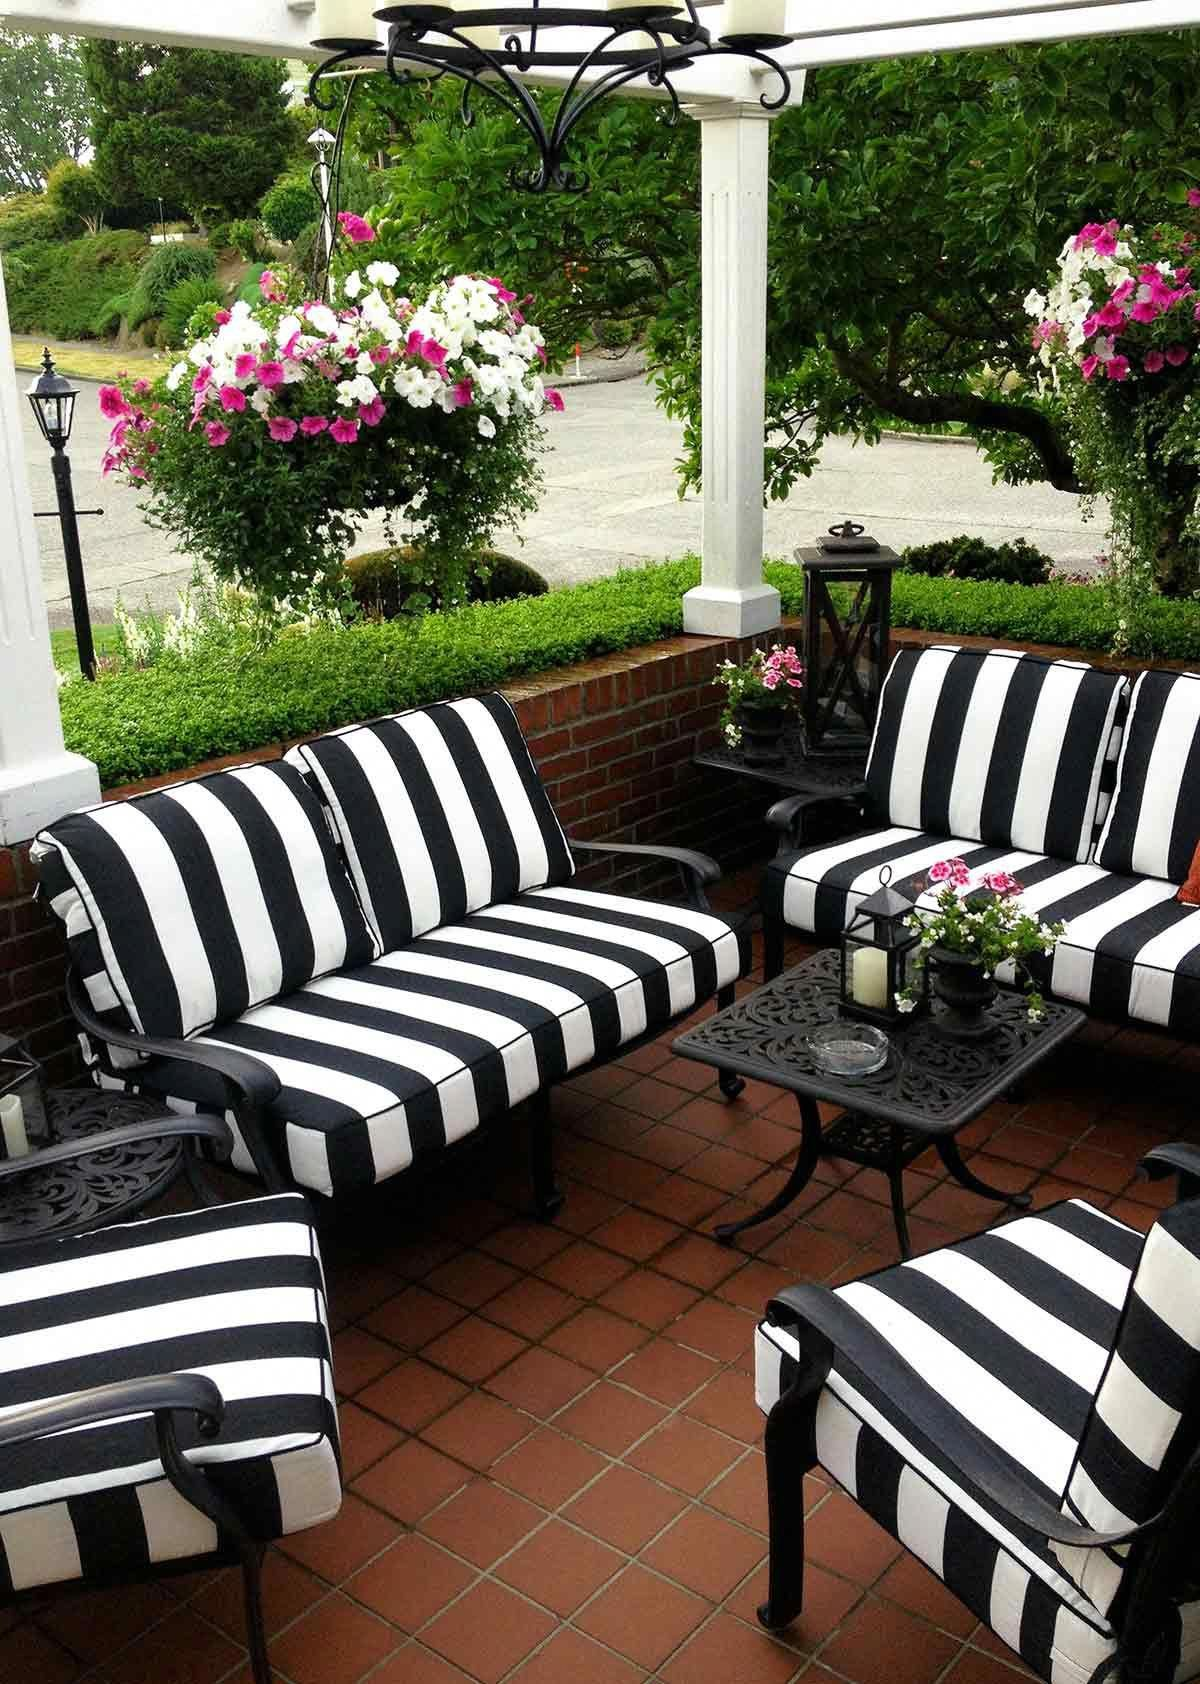 How To Add Comfort To Your Outdoor Space With Deep Seating White